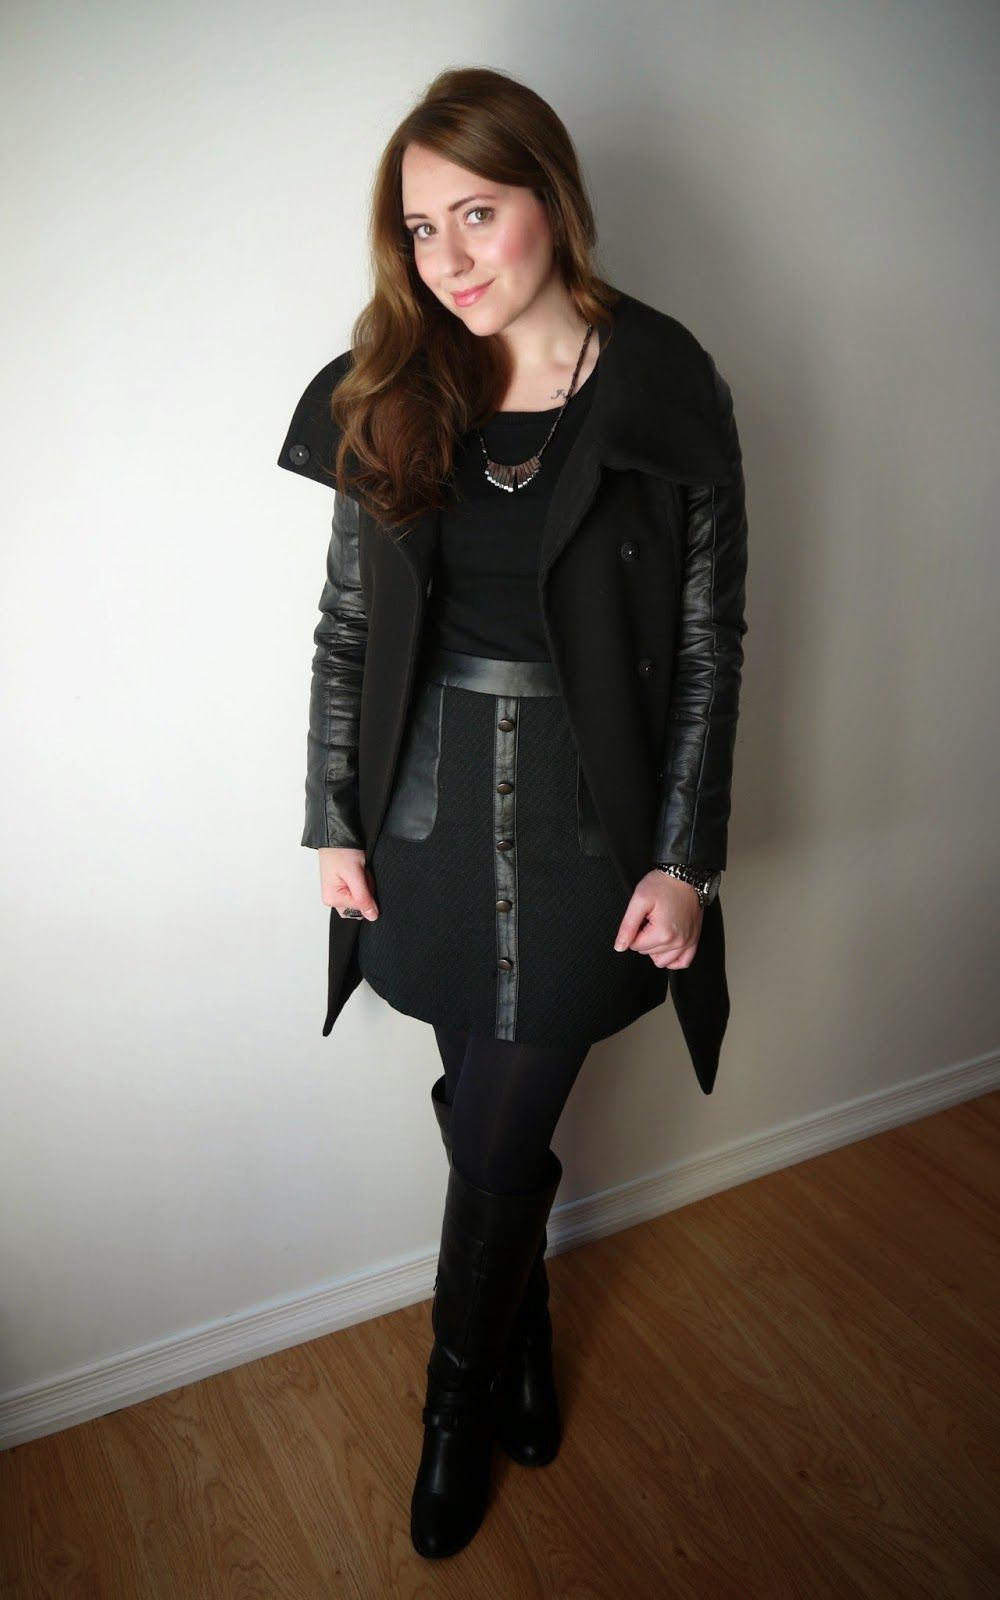 Outfit {Monotone Black + Leather Accents & Gunmetal}